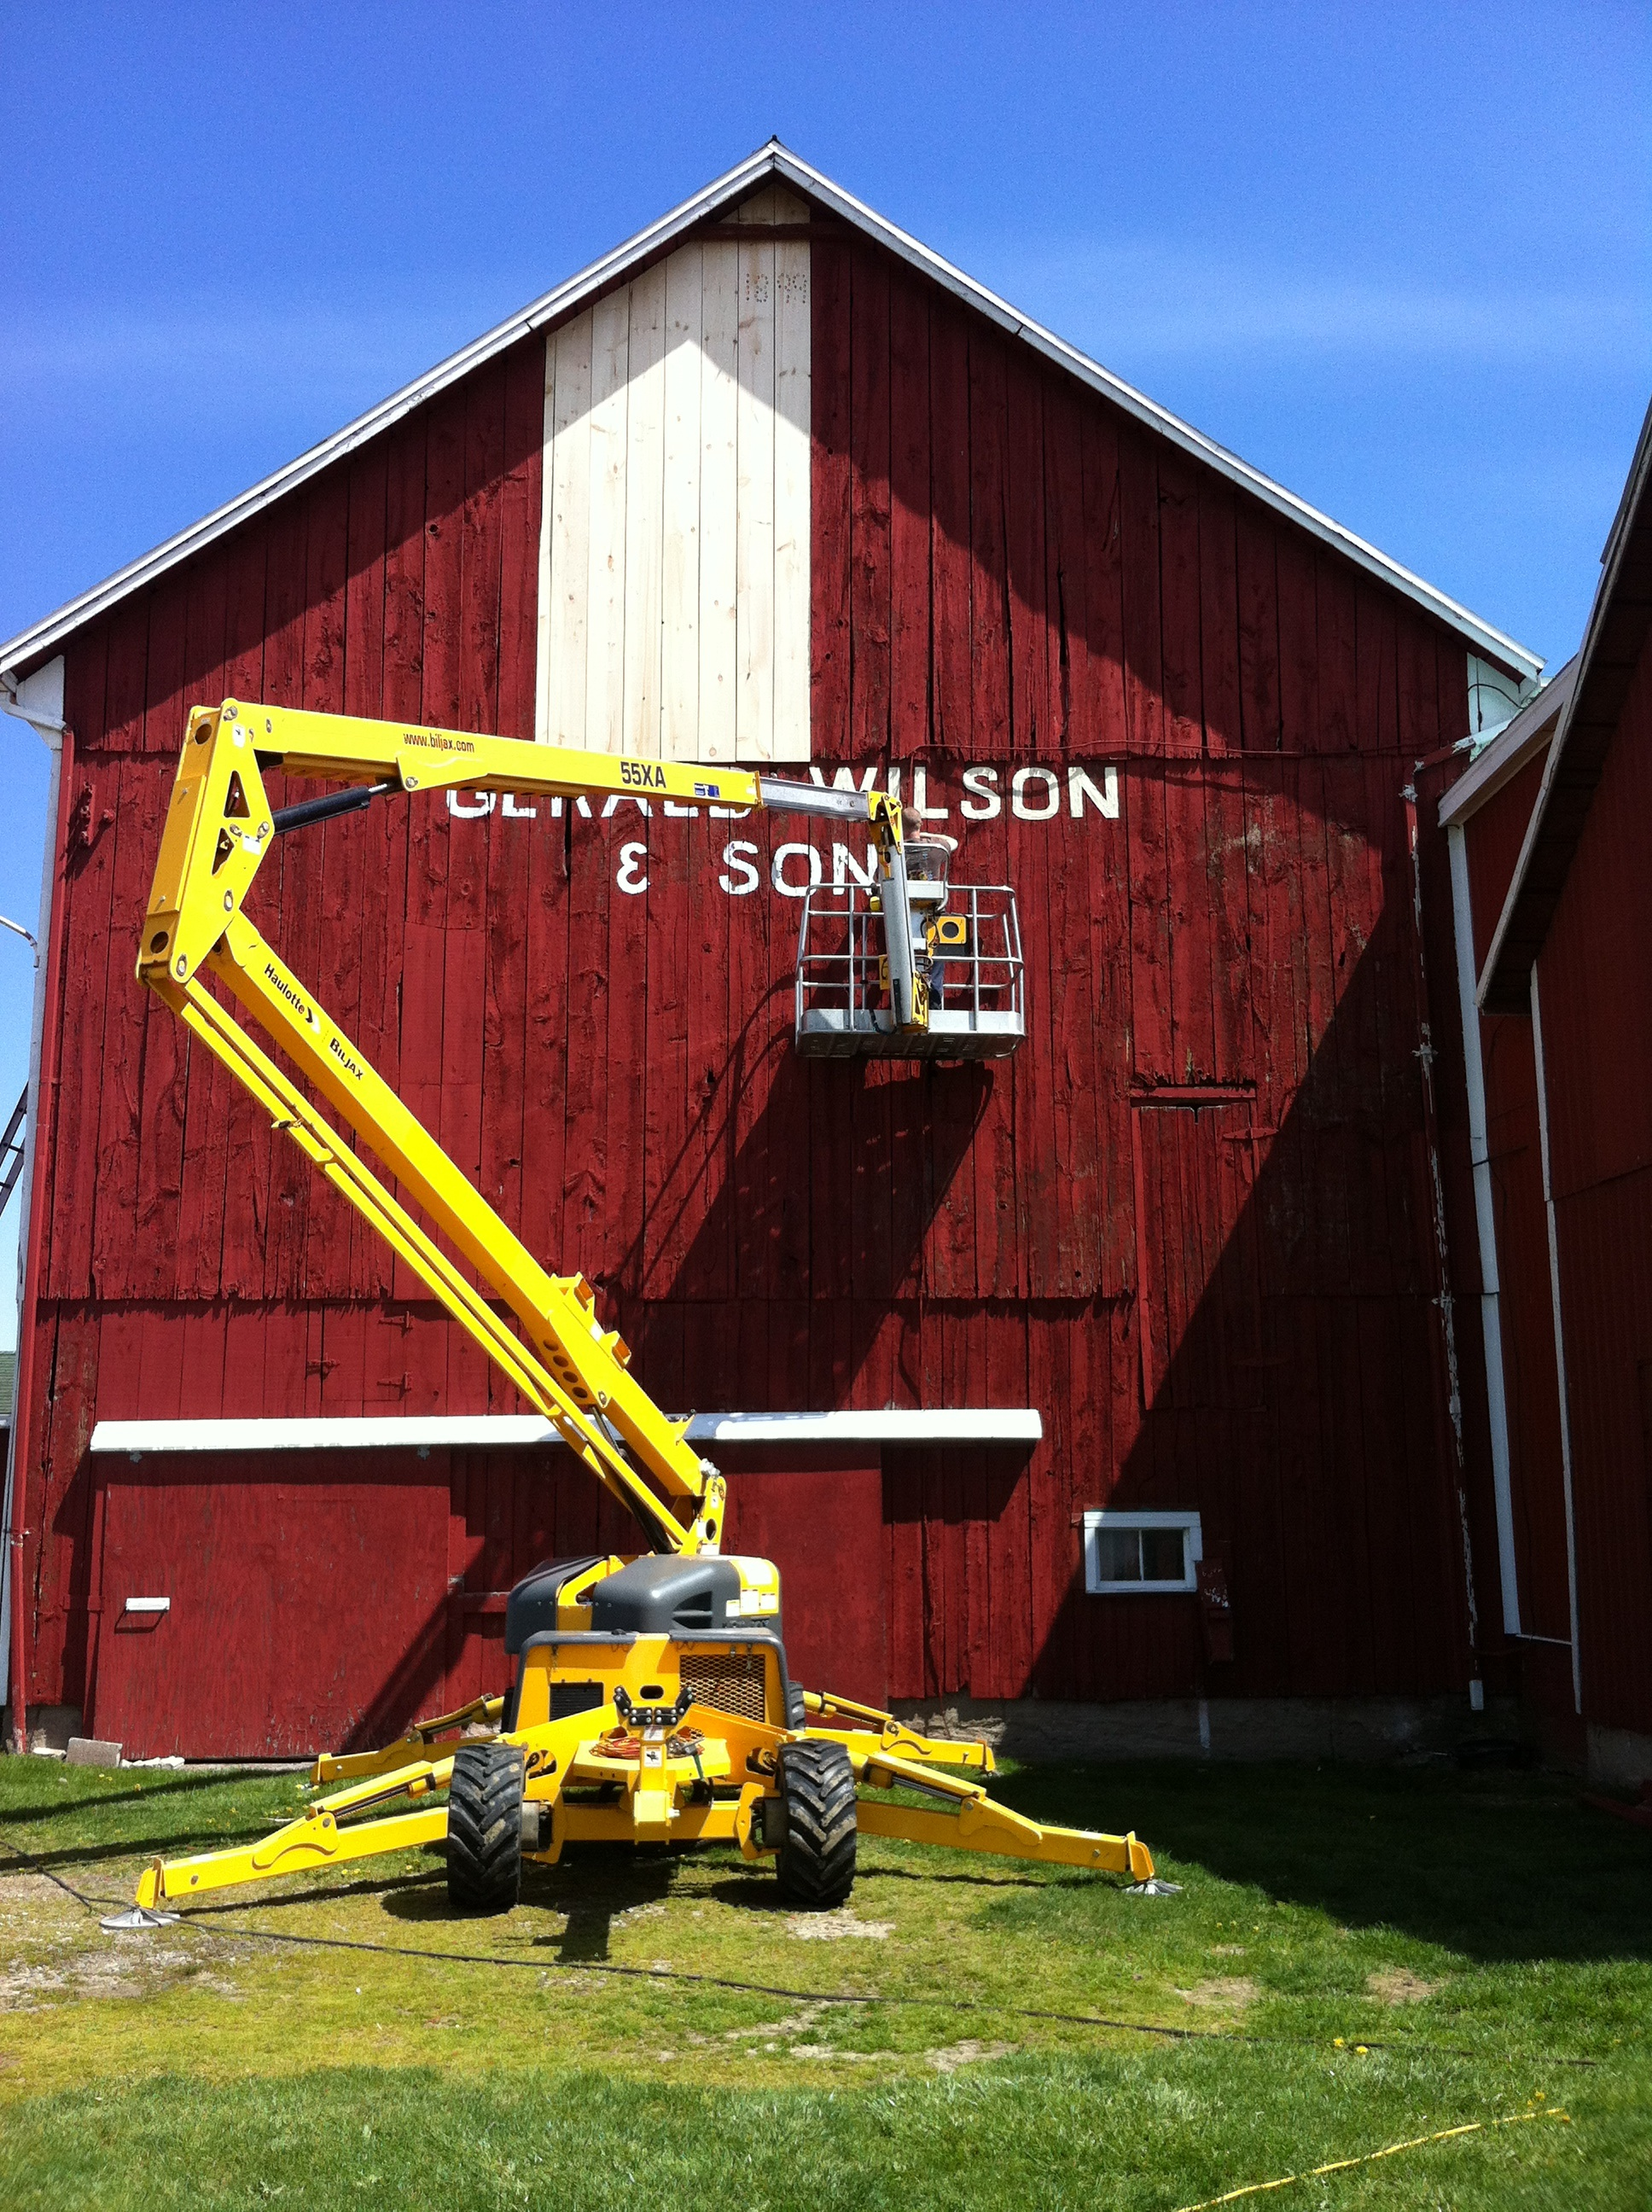 Barn Repair and Restoration in Ontar